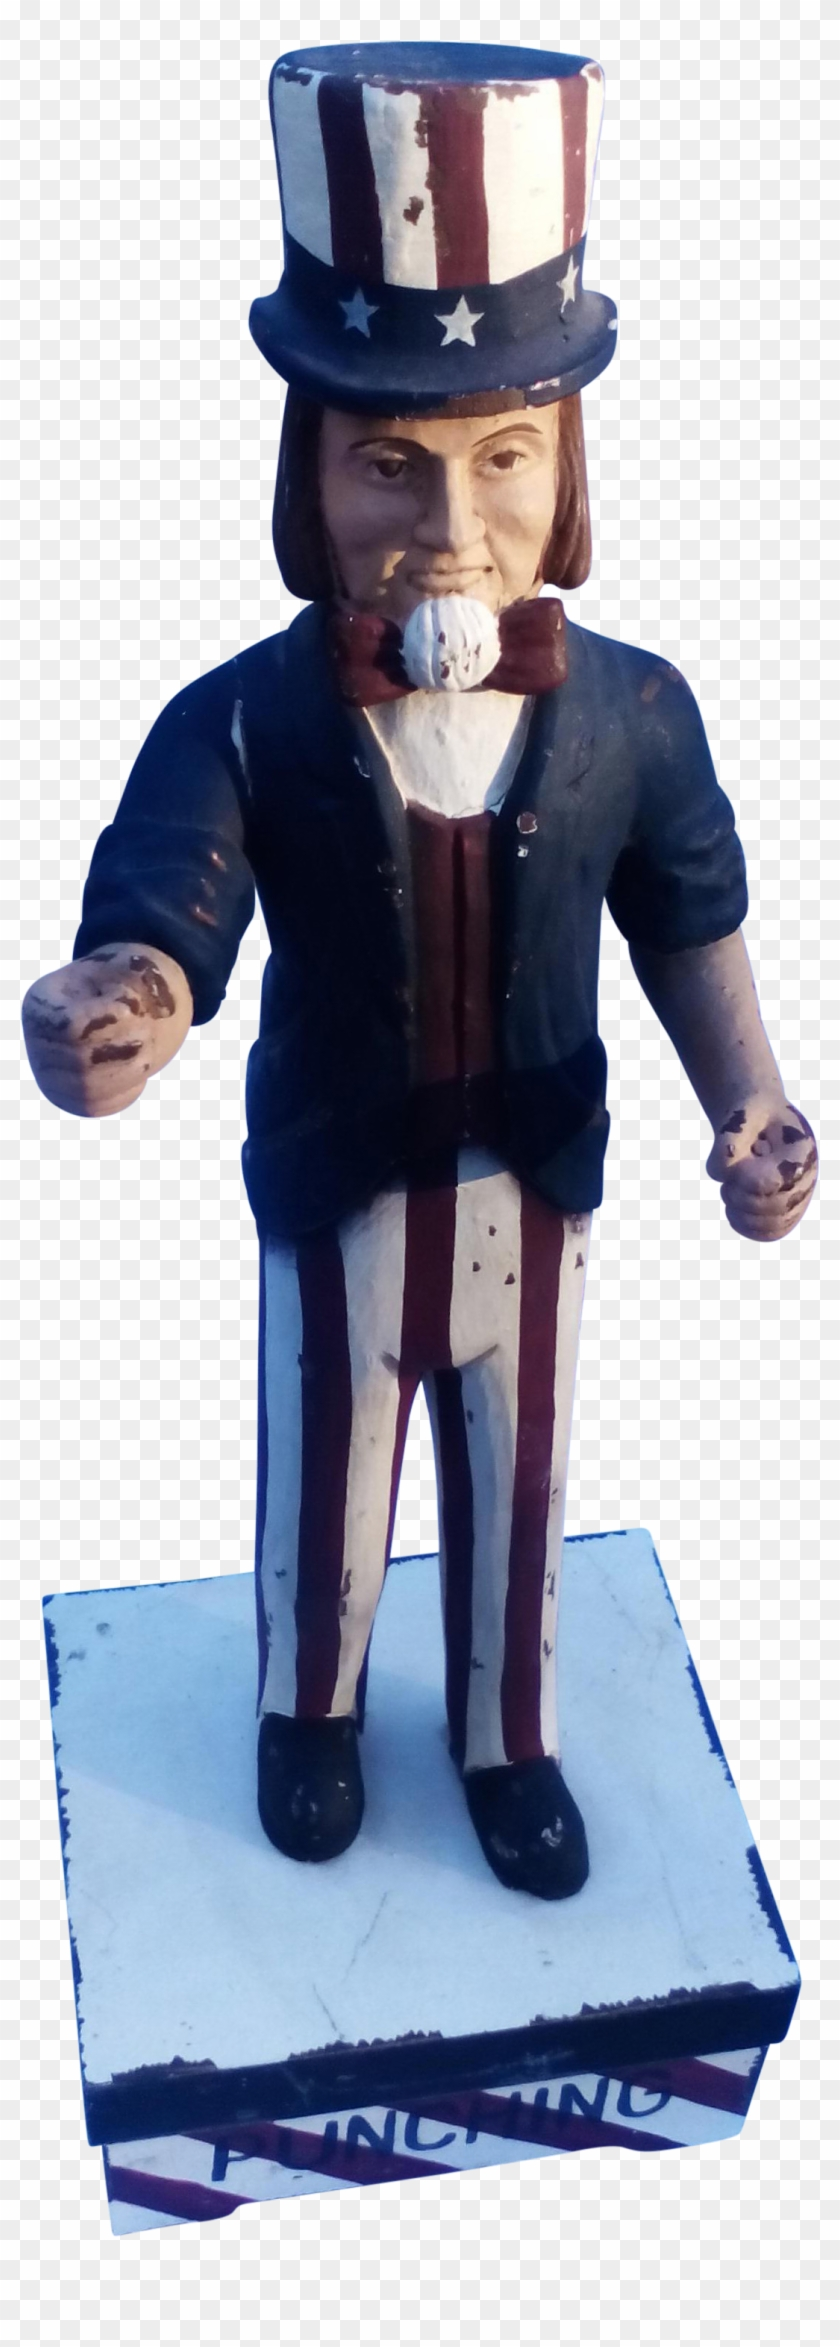 Hand Carved Wooden Uncle Sam On Chairish - Figurine Clipart #3535641